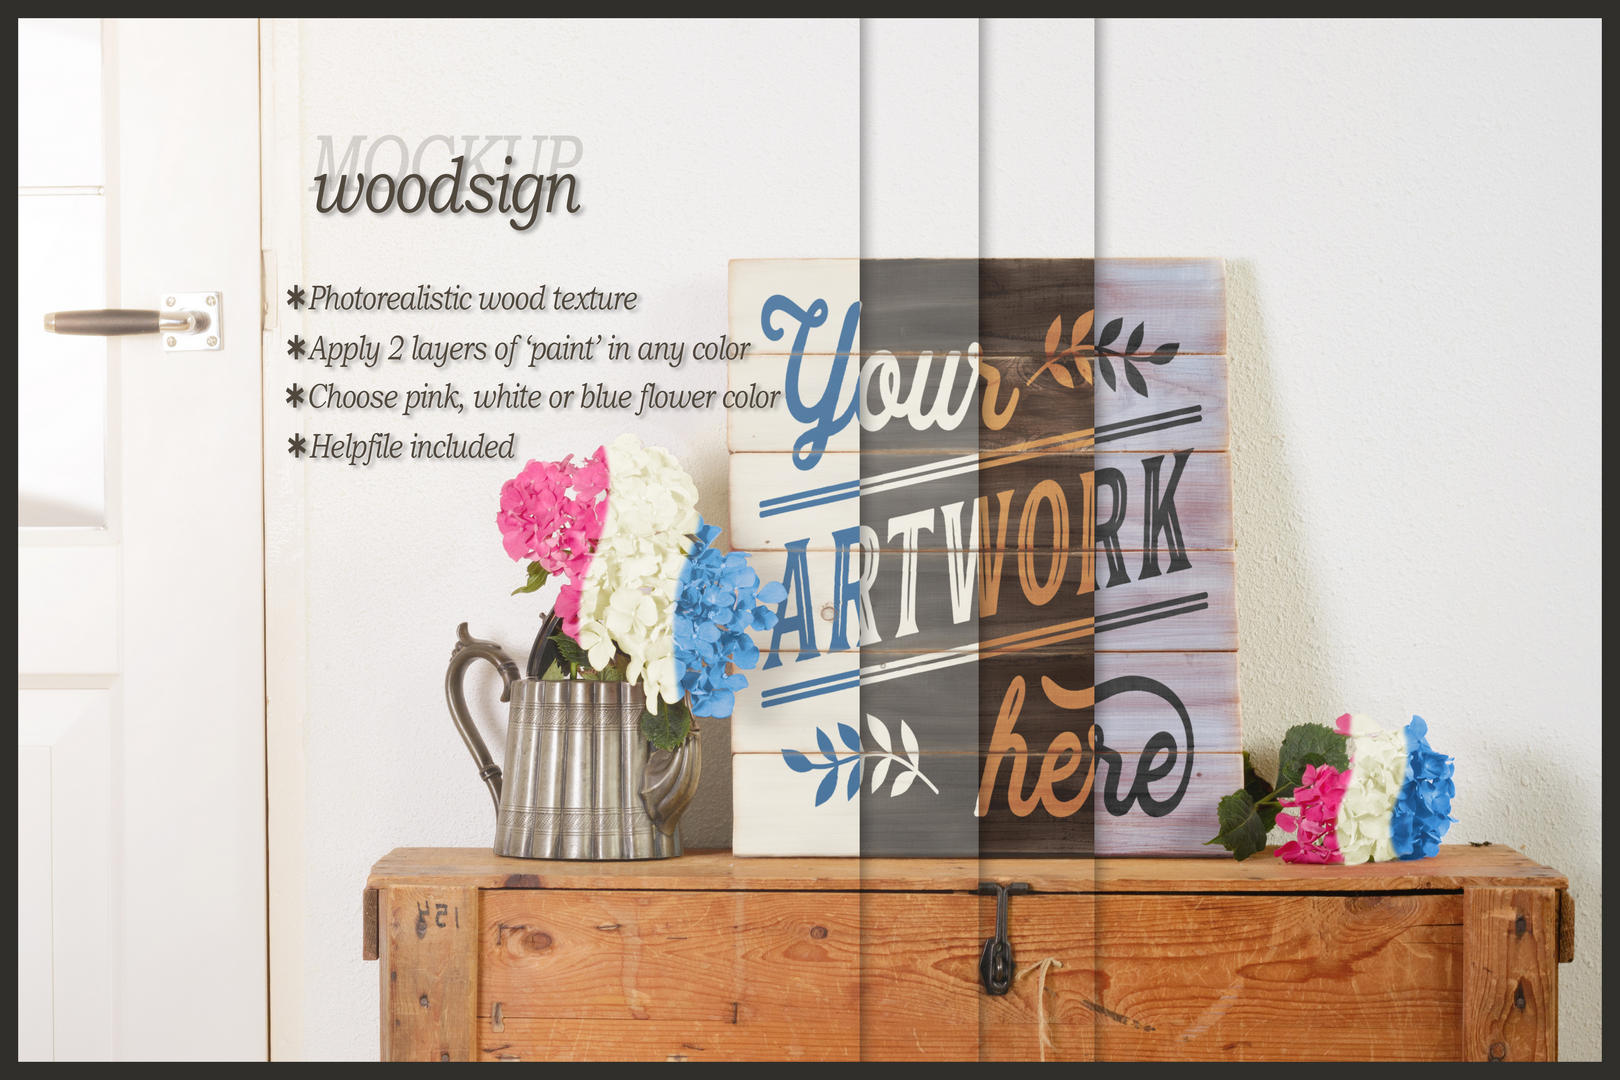 Woodsign pallet wood mockup - clean bright interior example image 1